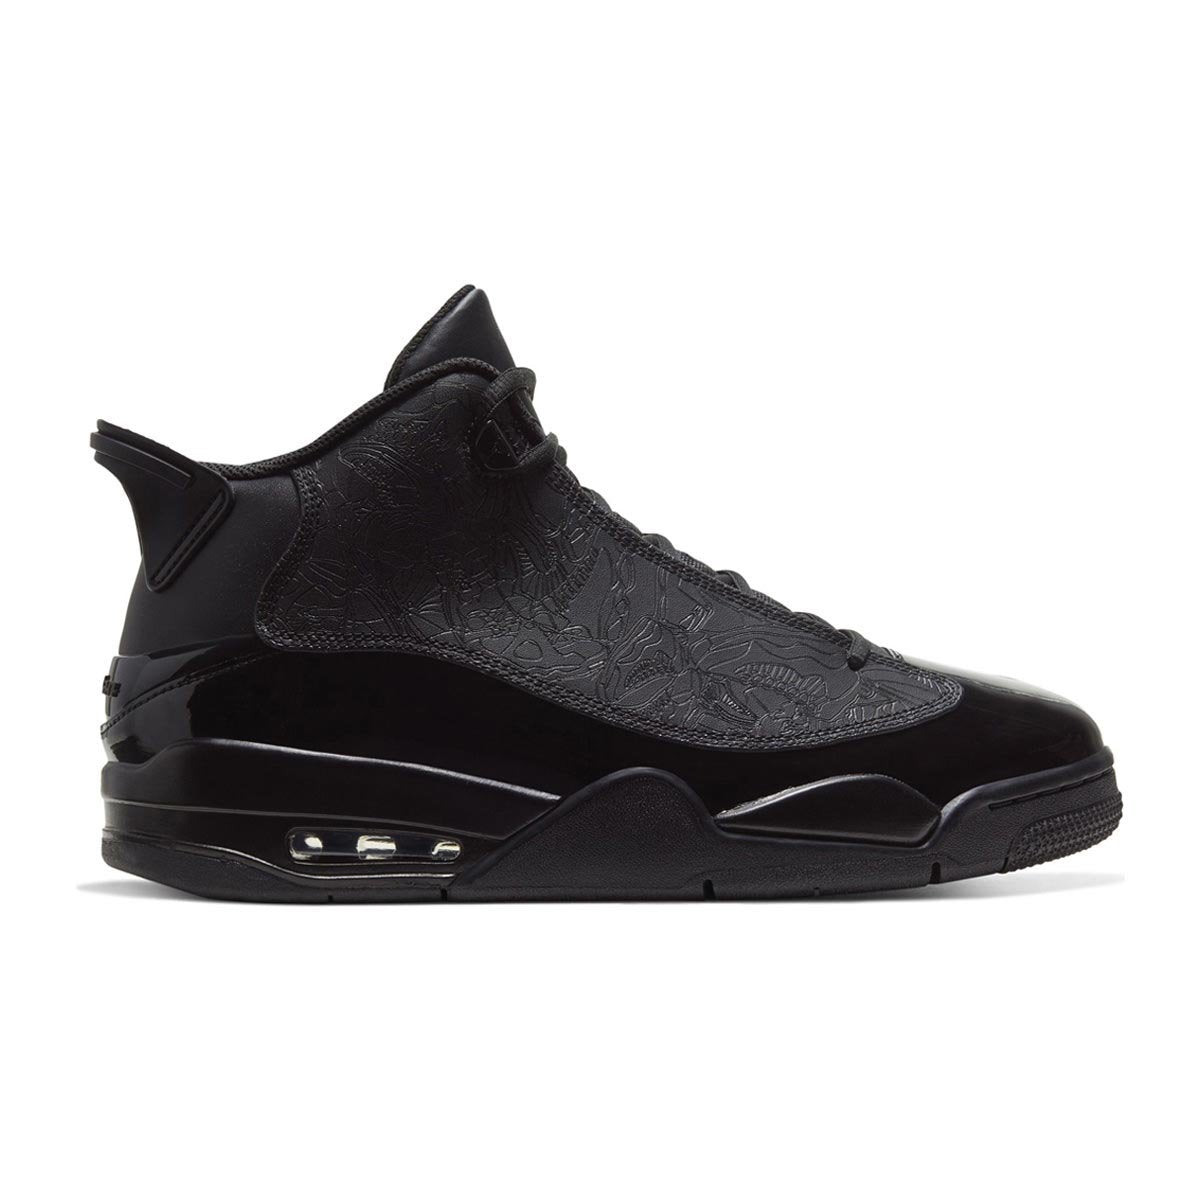 Men's Air Jordan Dub Zero